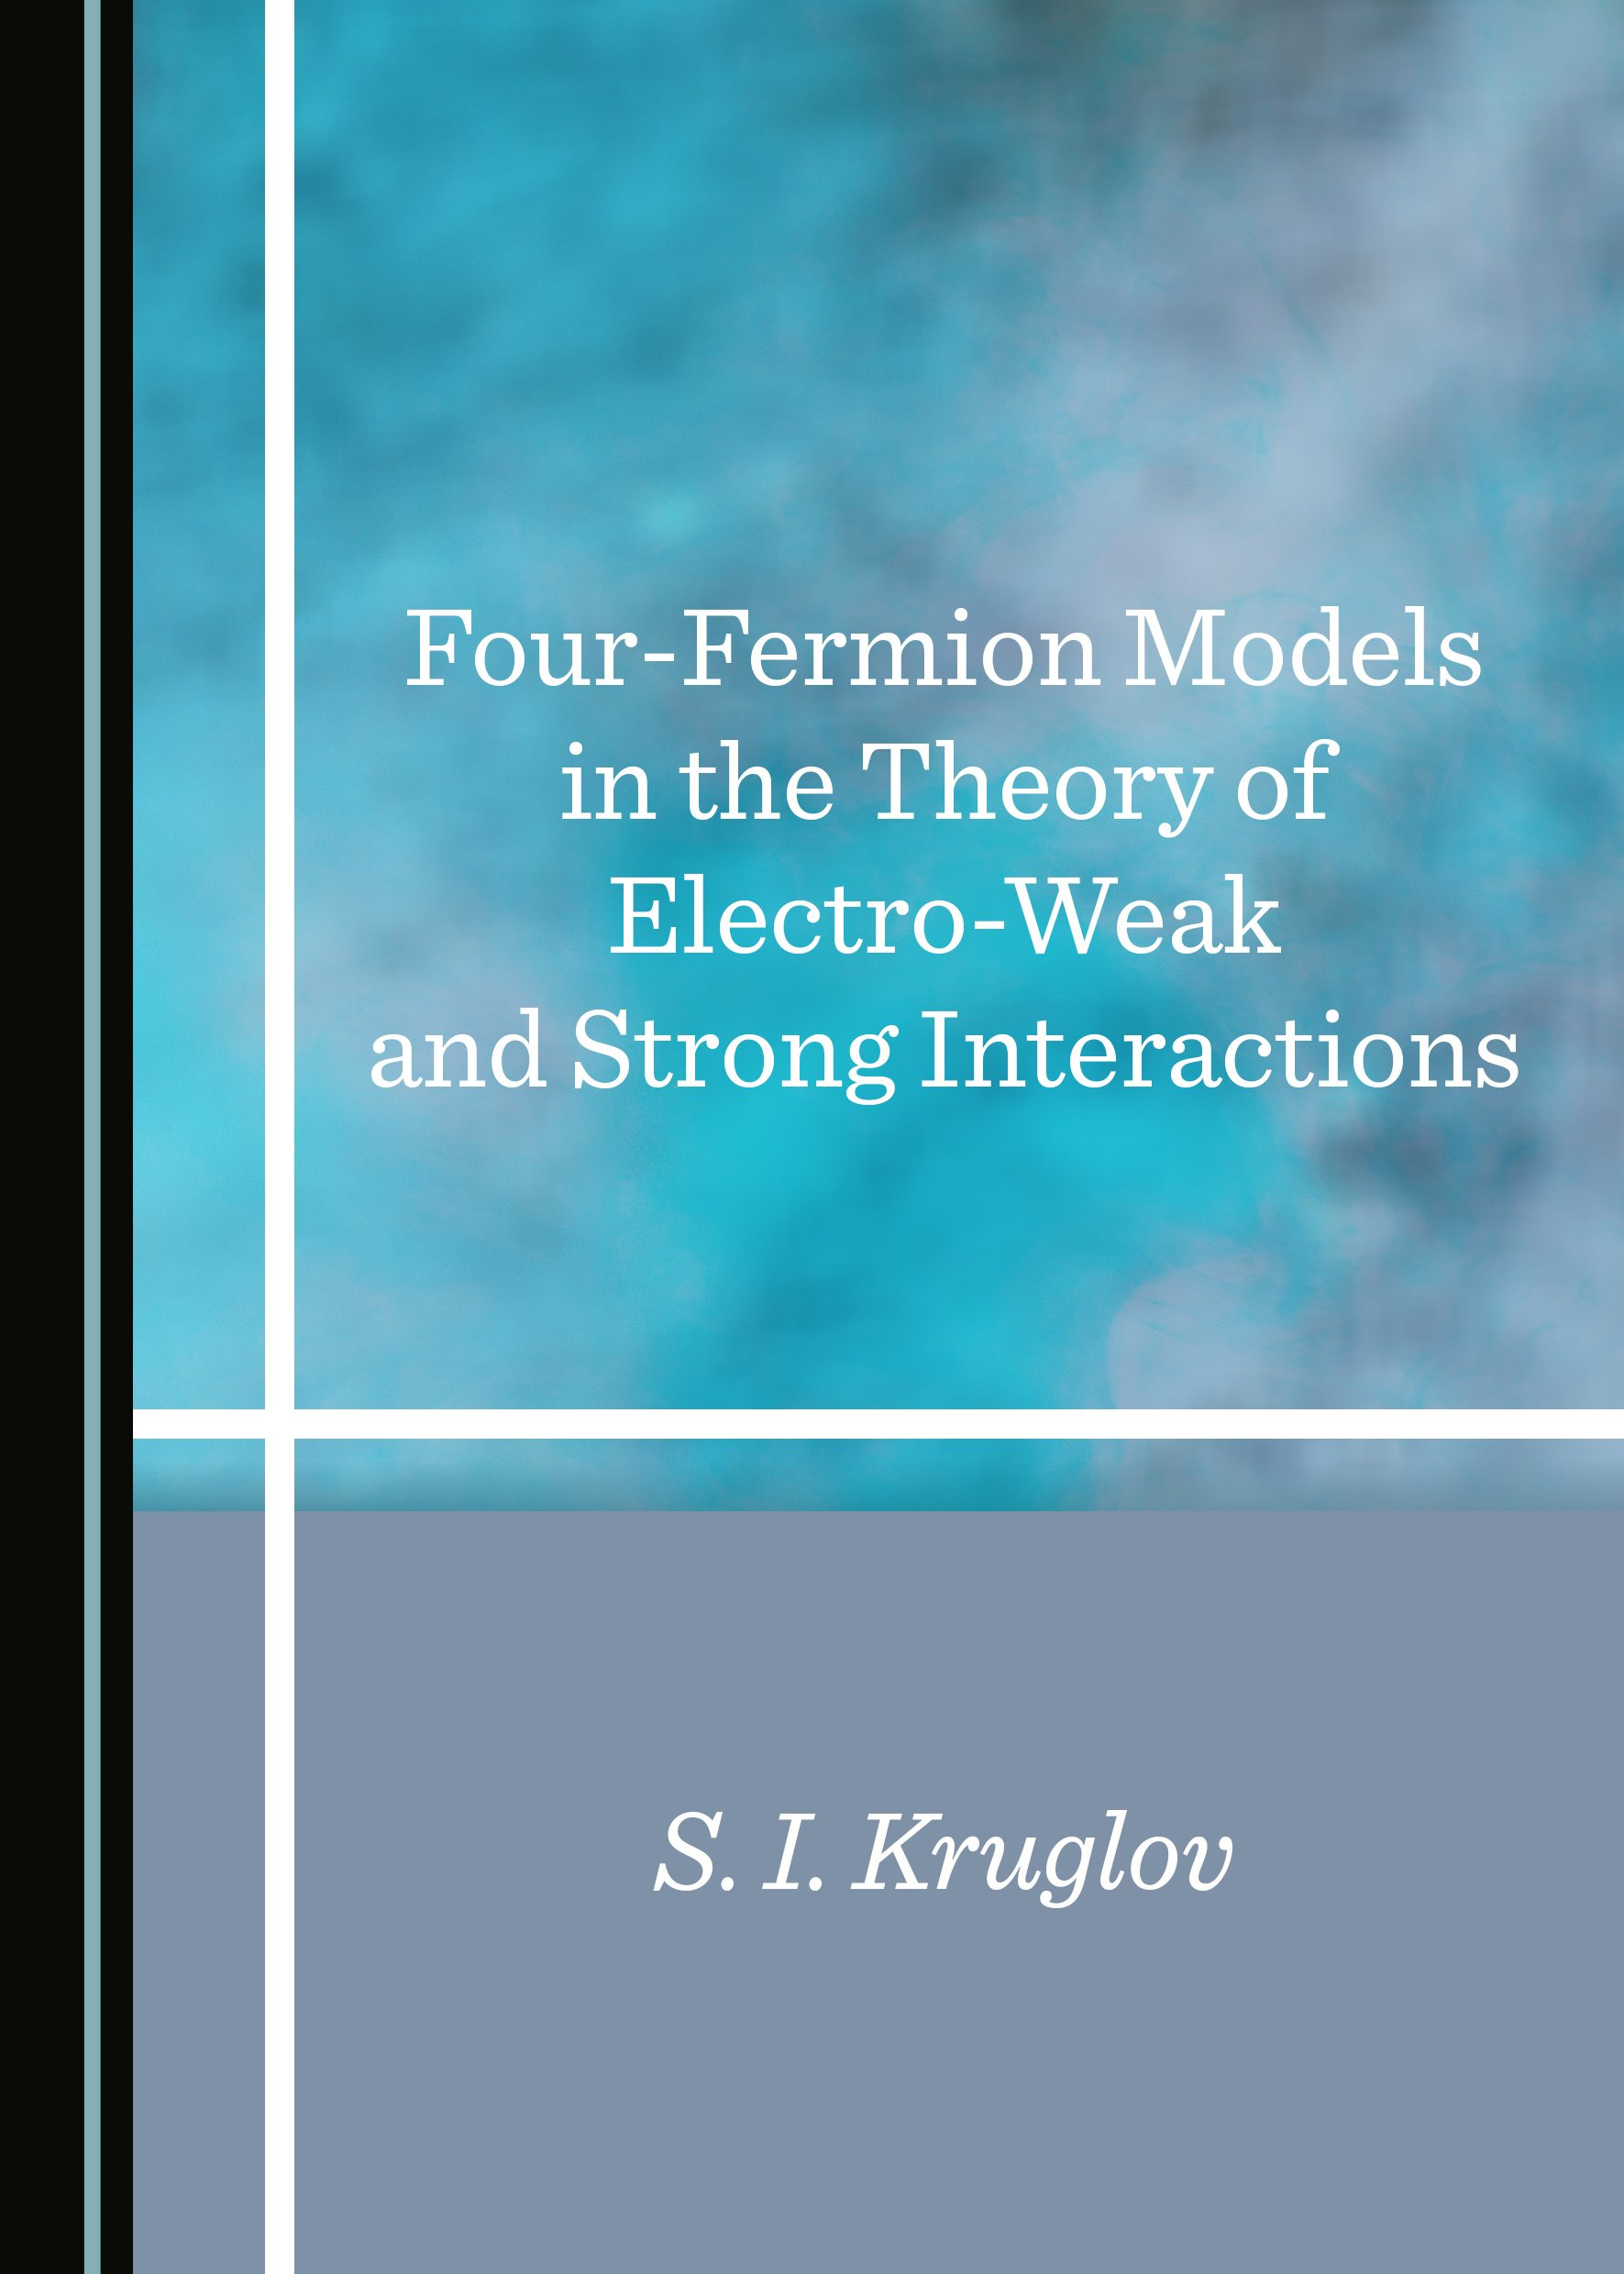 Four-Fermion Models in the Theory of Electro-Weak and Strong Interactions